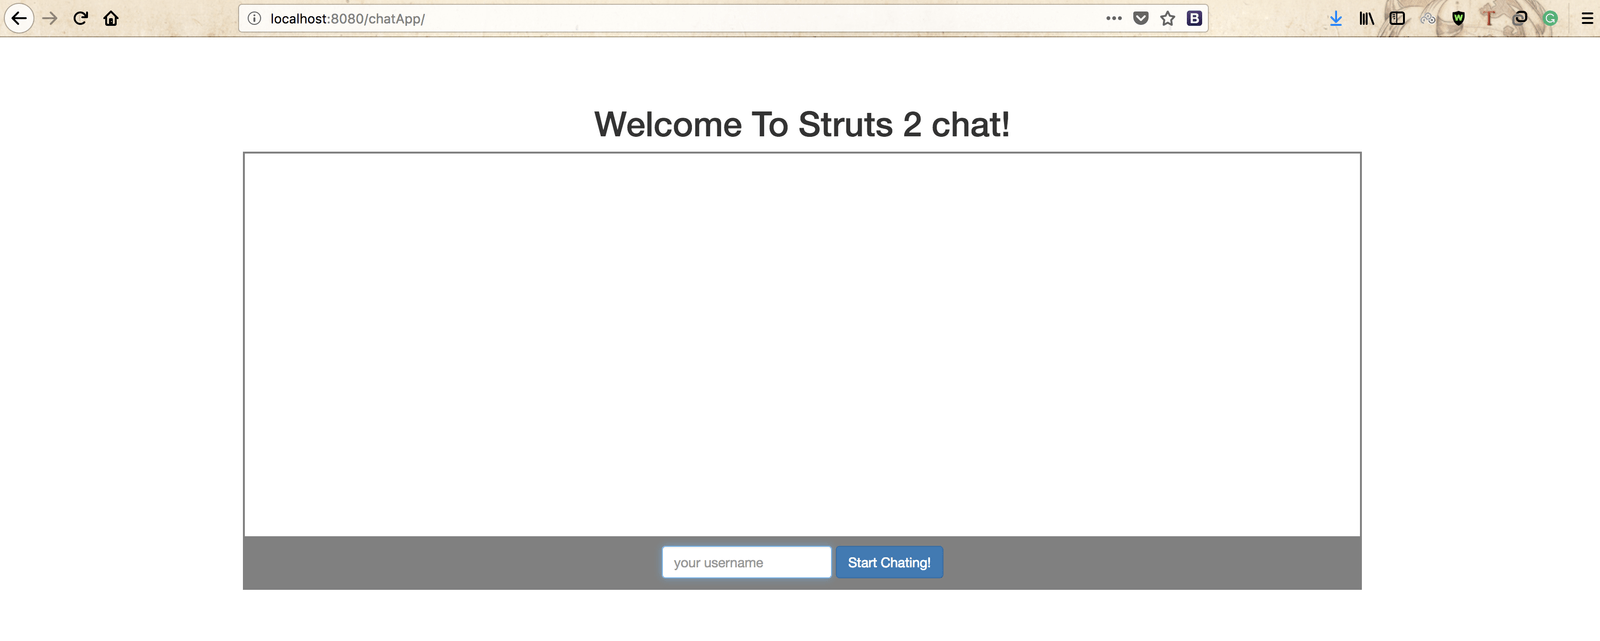 action class in struts 1.3 example